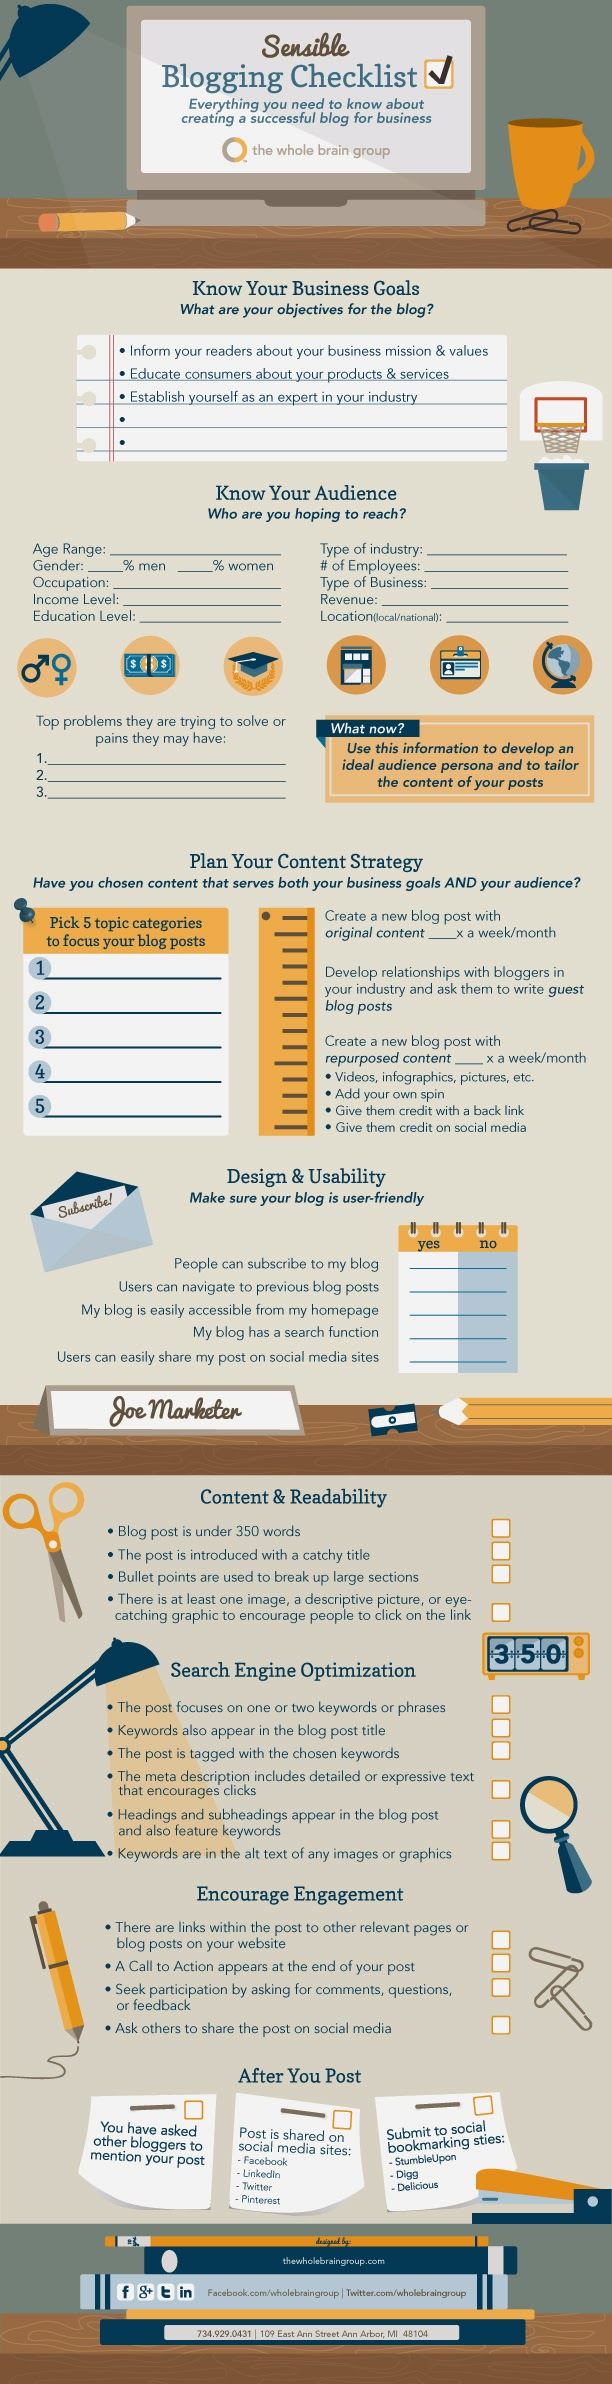 Infographic: Sensible Blogging Checklist